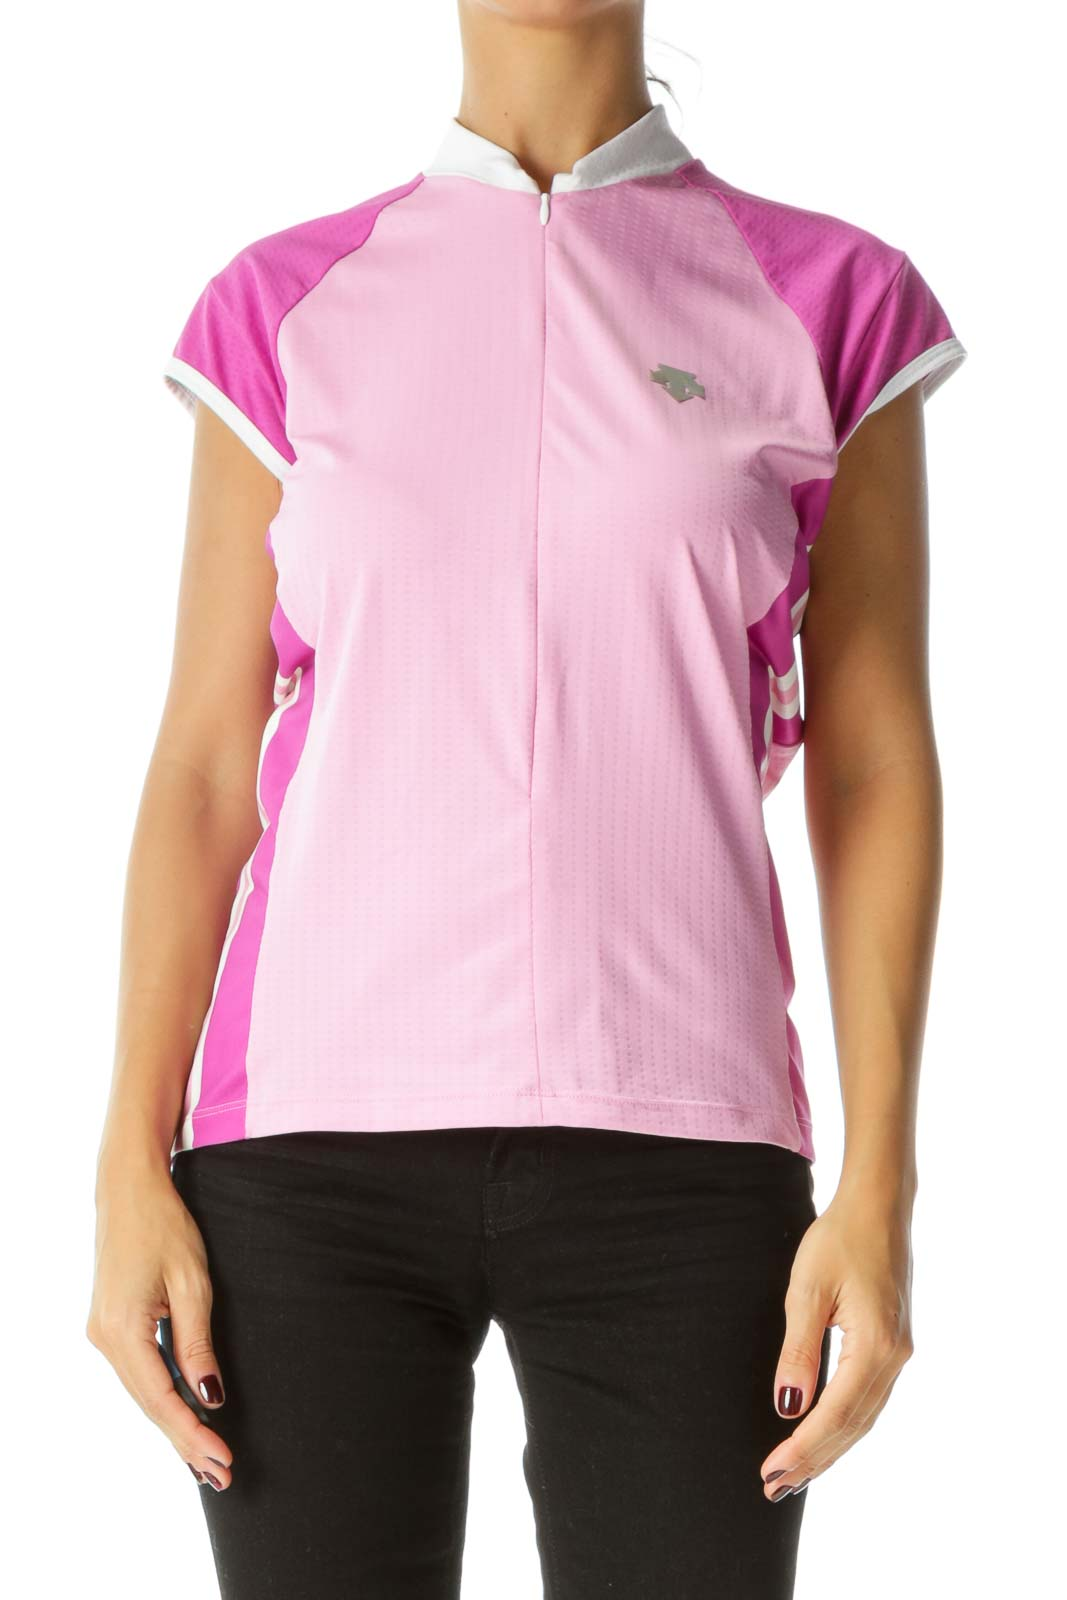 Pink Purple White Zippered Short Sleeve Reflective Logo Applique Sports Top Front